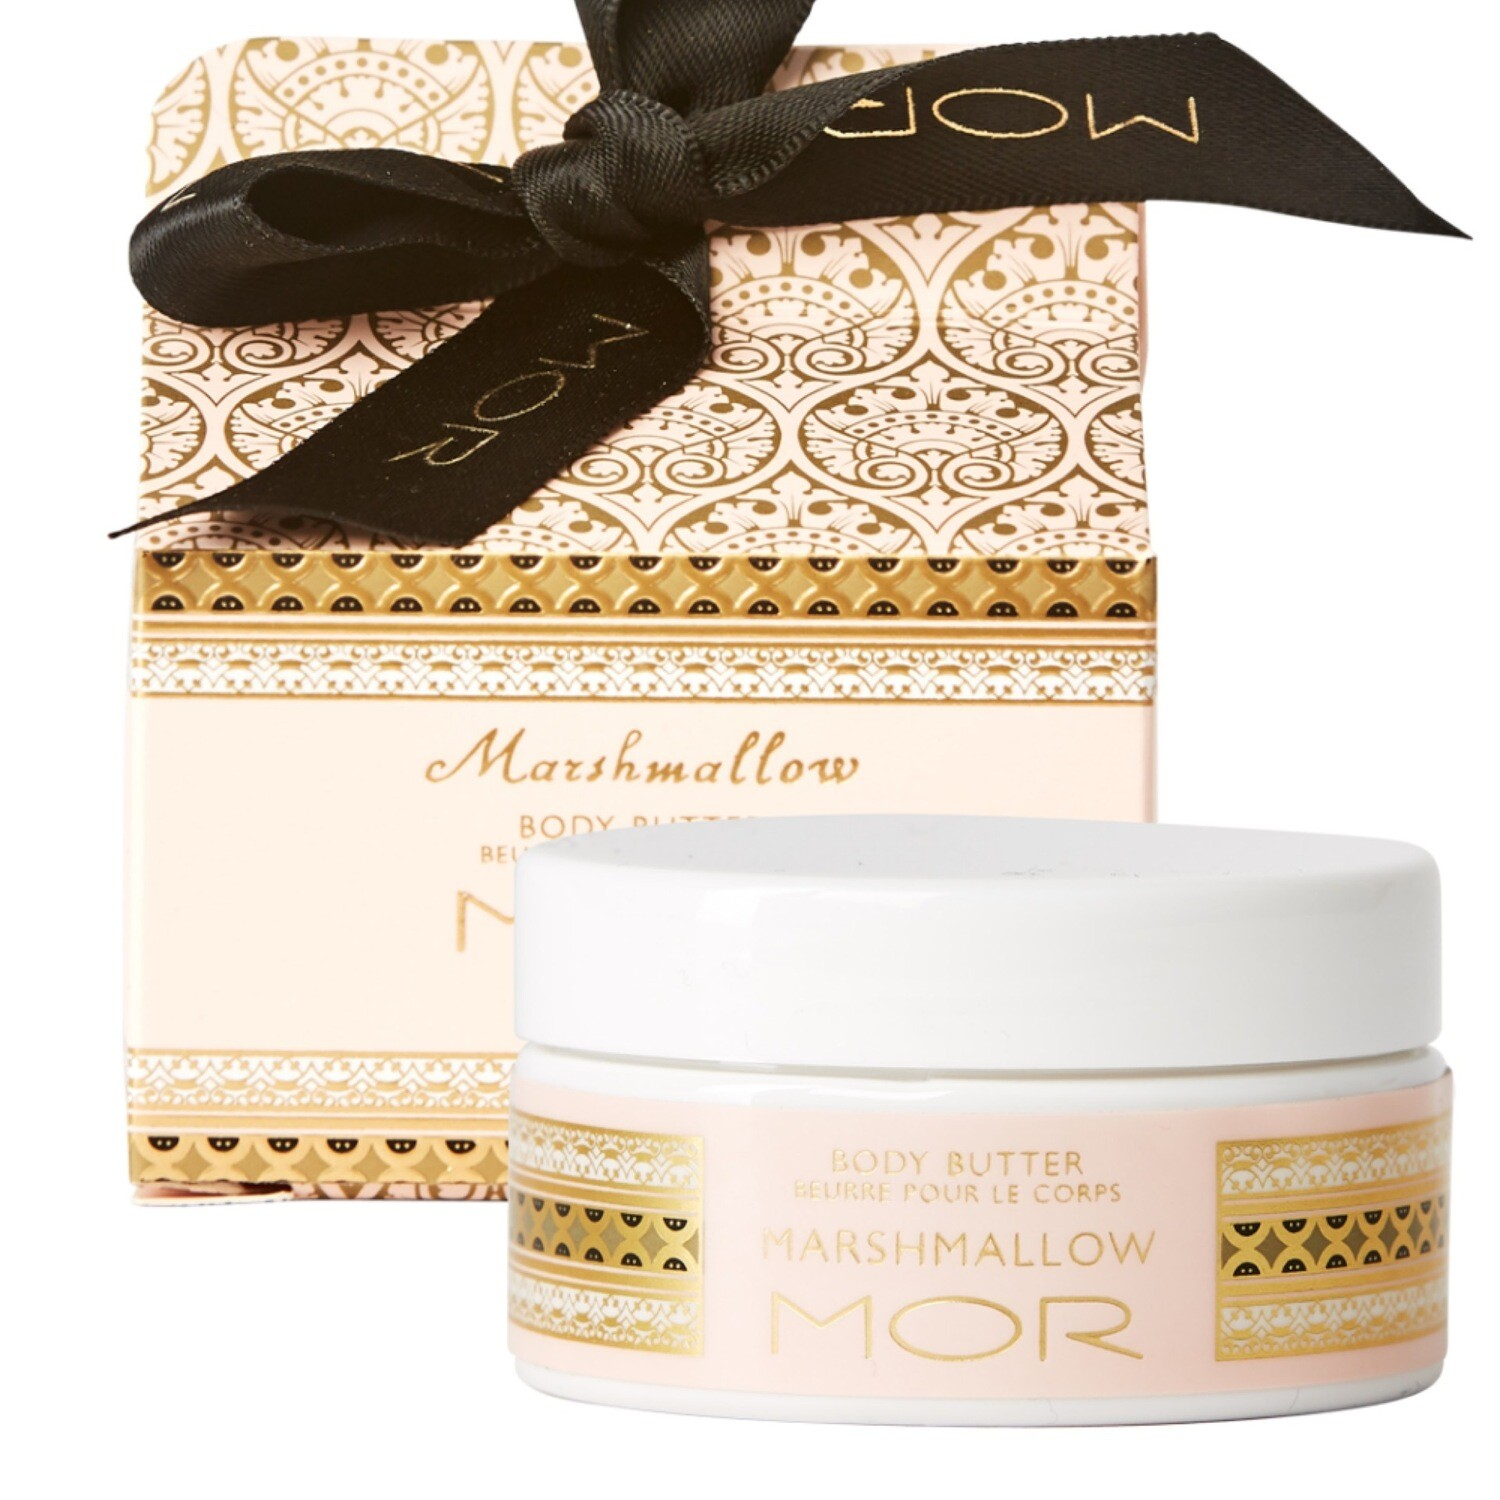 MOR Marshmallow Body Butter 50g